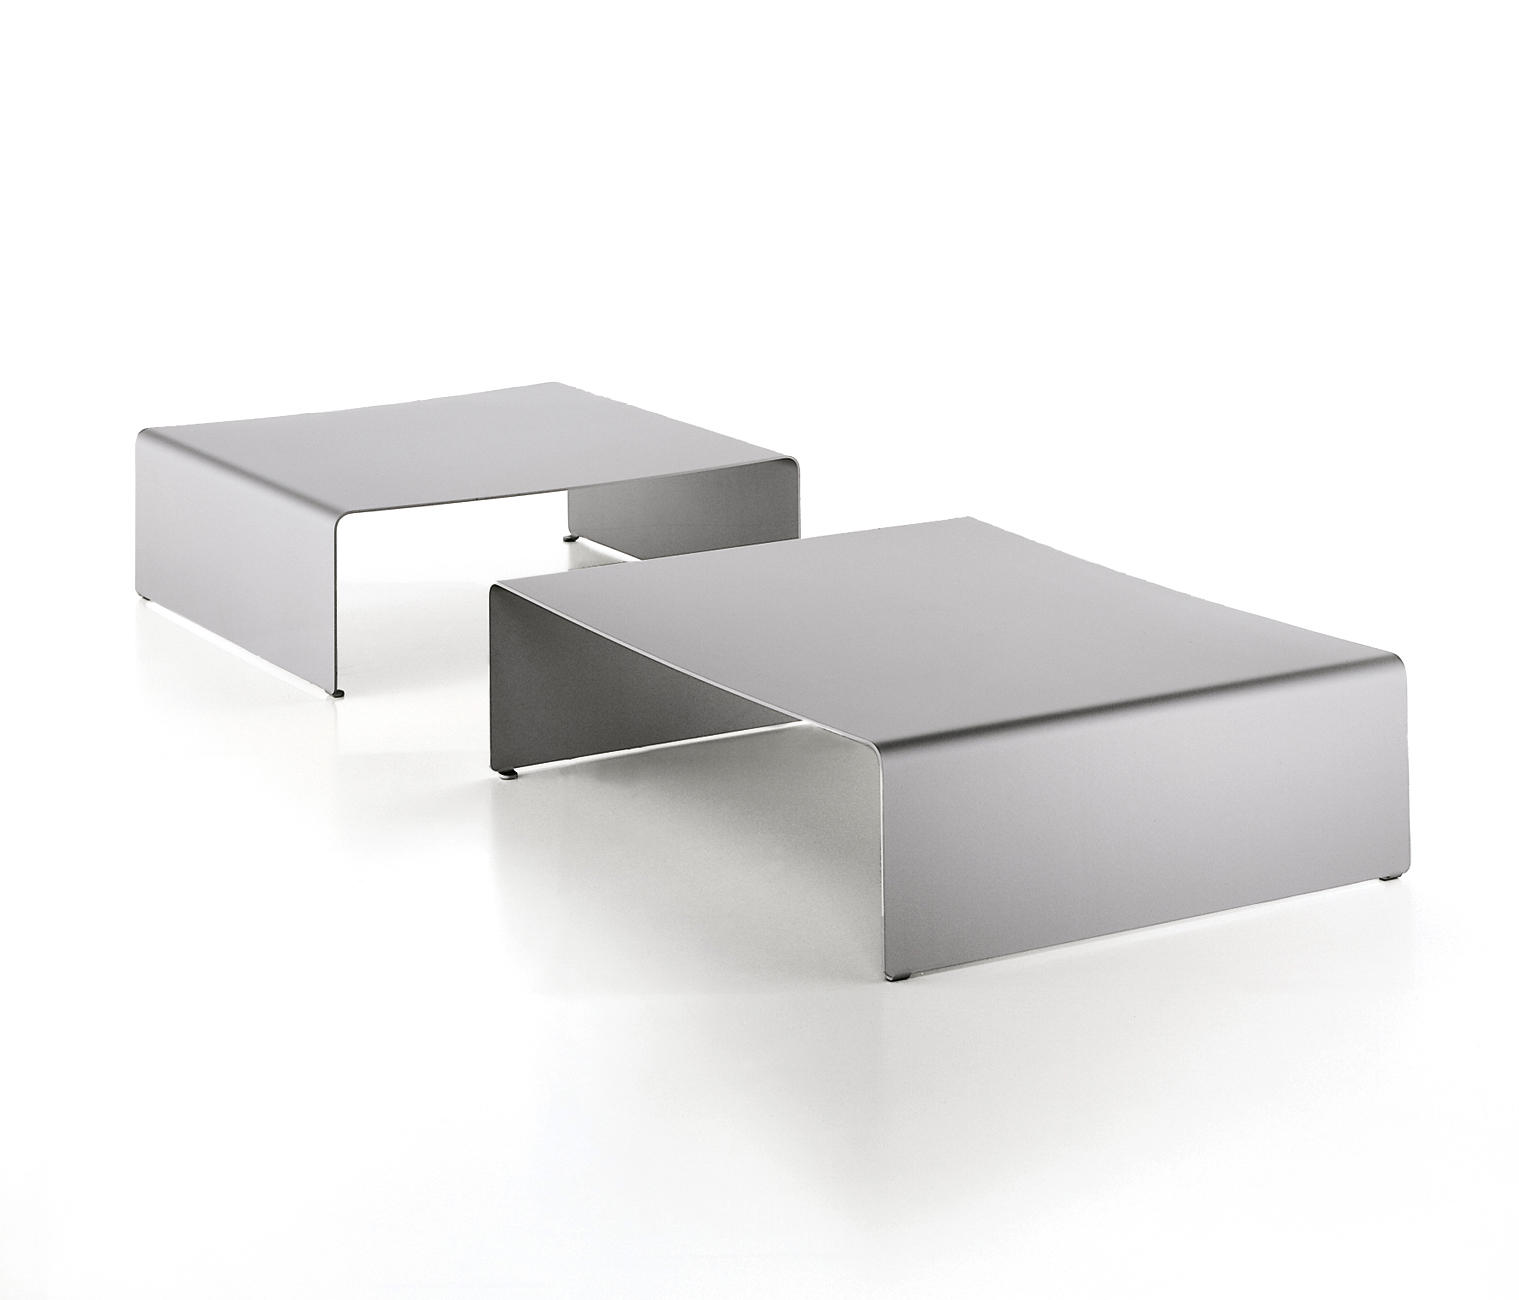 La table basse coffee tables from mdf italia architonic - Table basse transformable en table haute ...